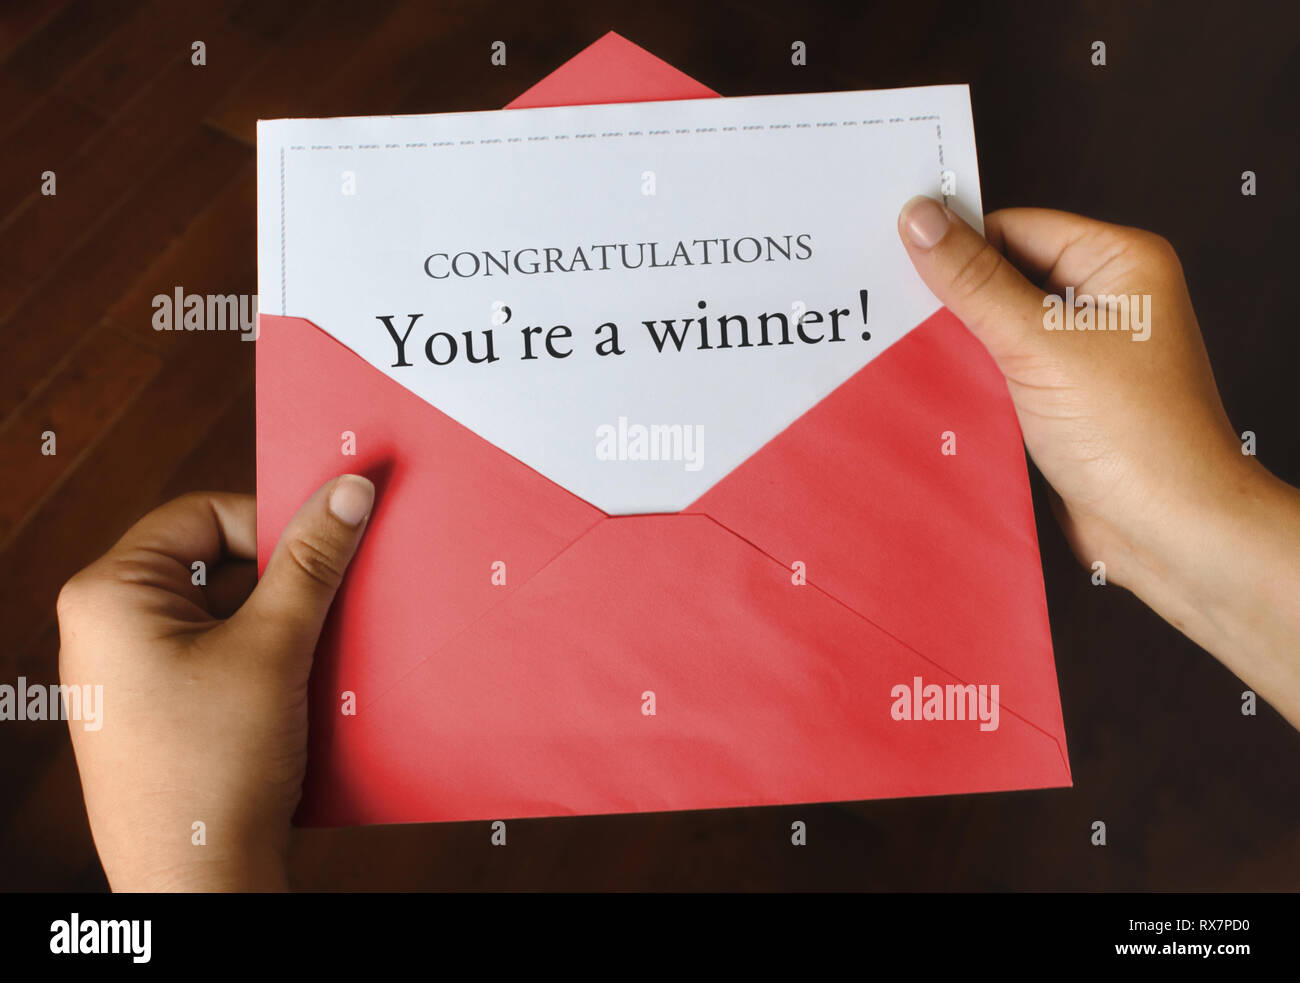 An open red envelope with a letter that says Congratulations You're a winner! with female hands holding it up - Stock Image